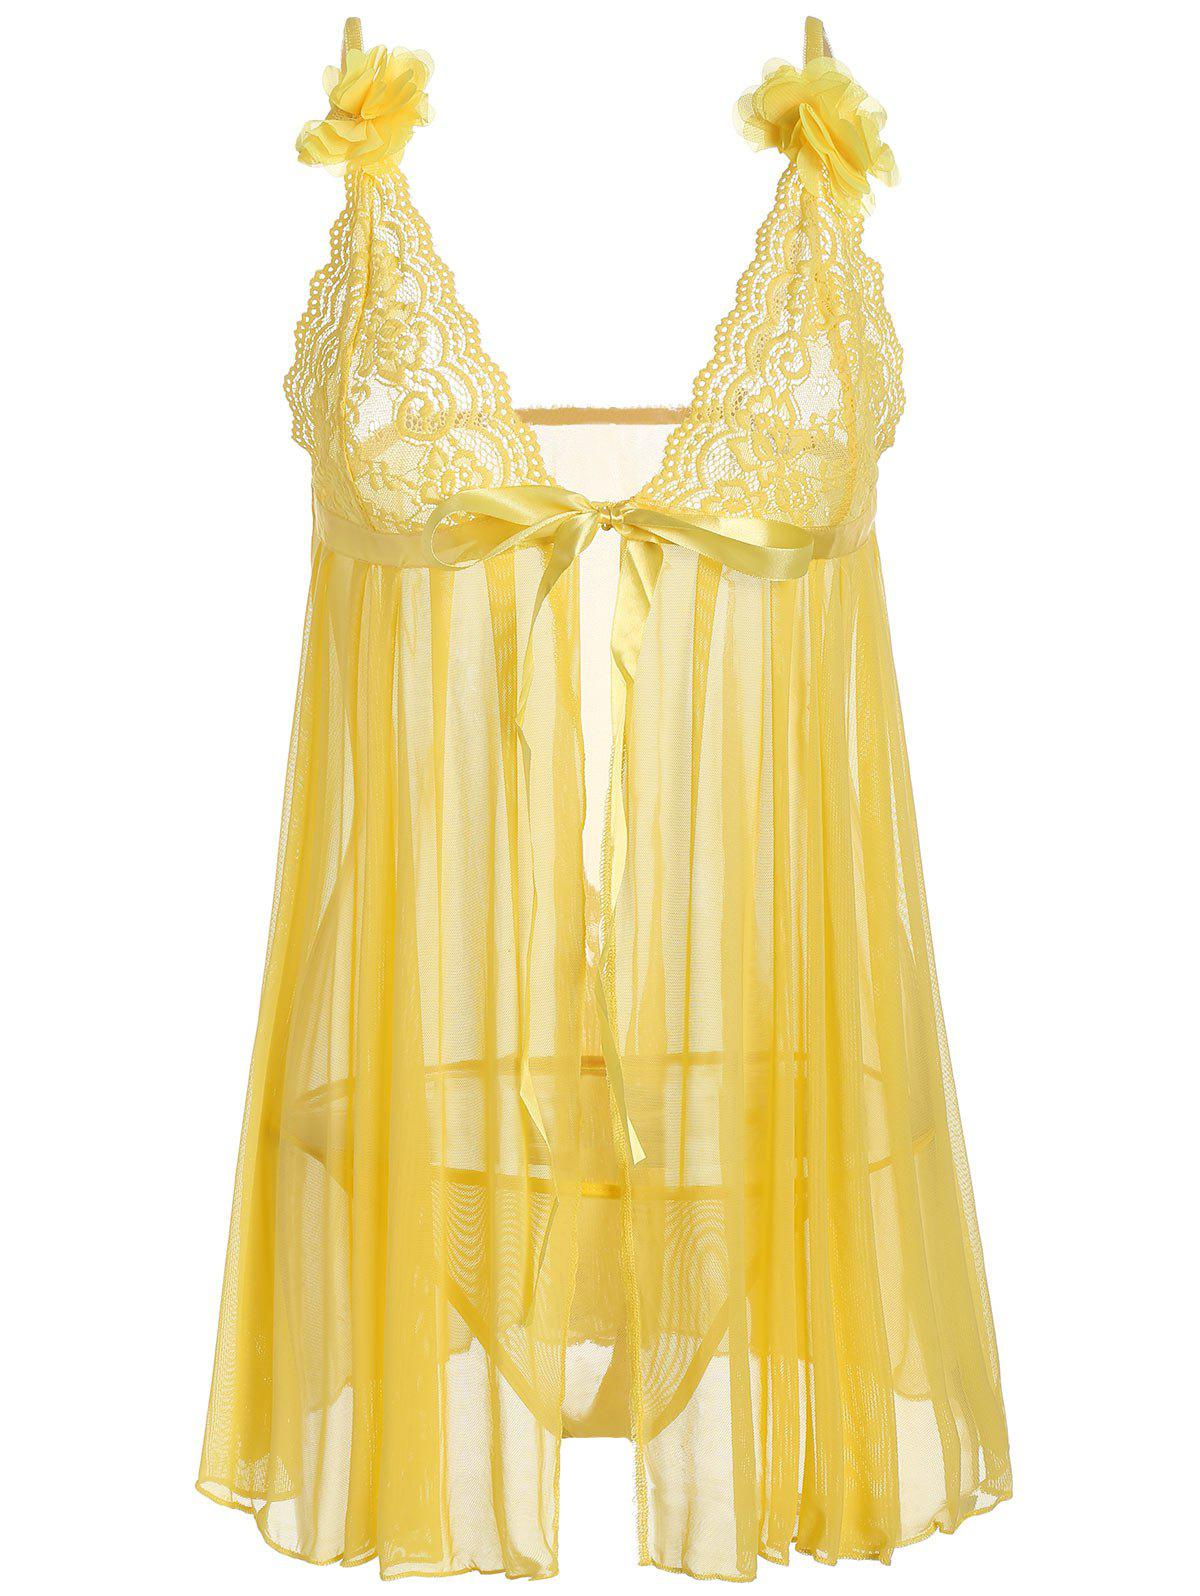 Mesh Lace Panel Sheer Slip Babydoll - YELLOW ONE SIZE